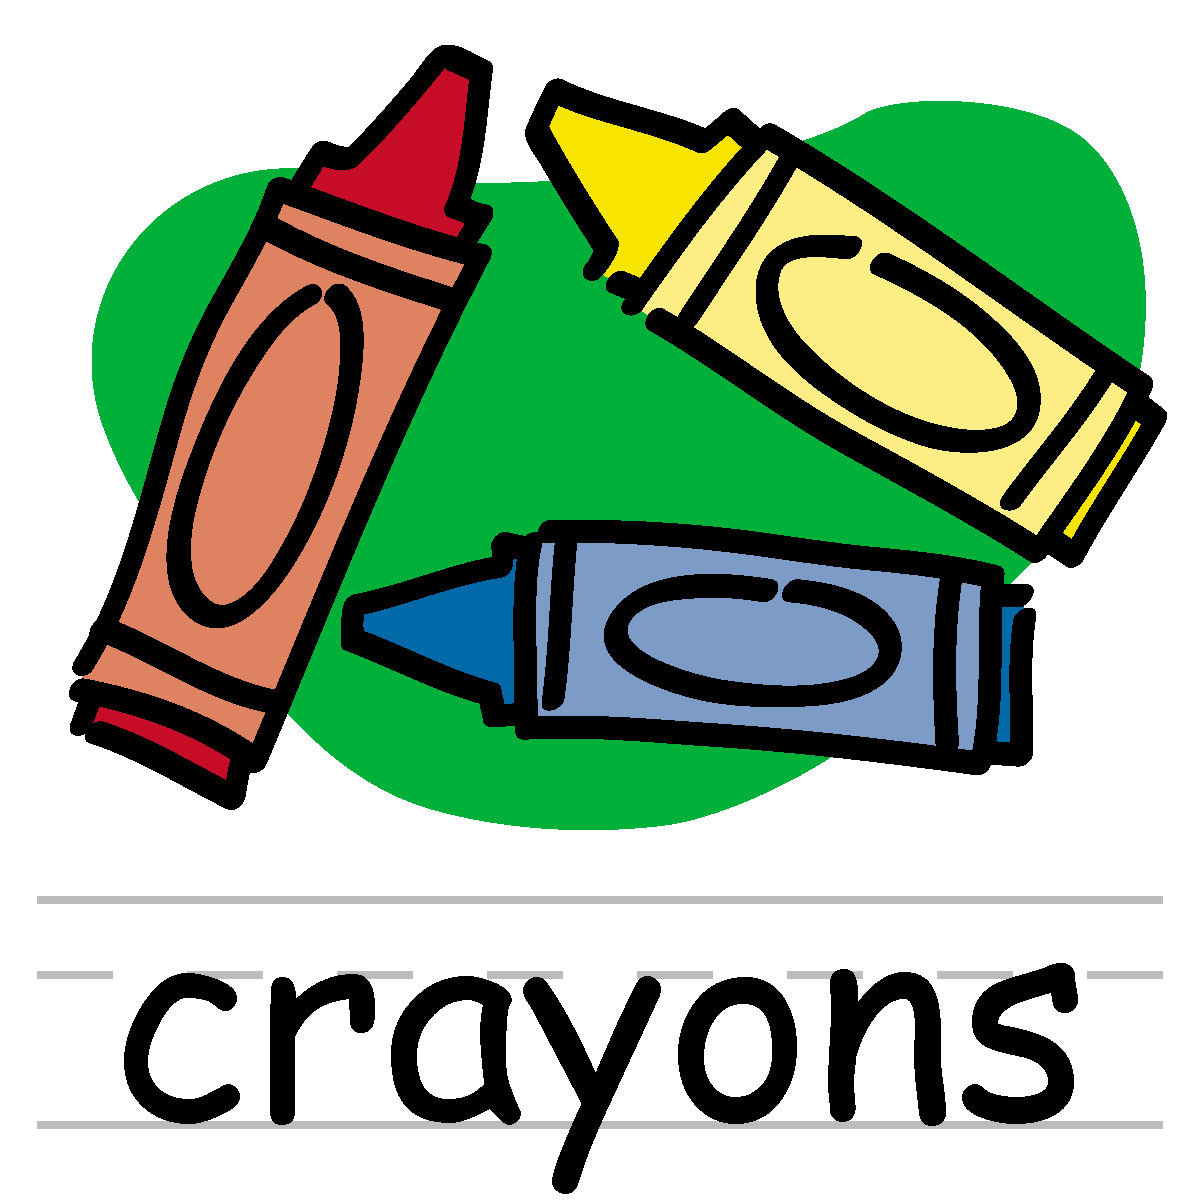 Color Crayons Clipart - Clipart Kid